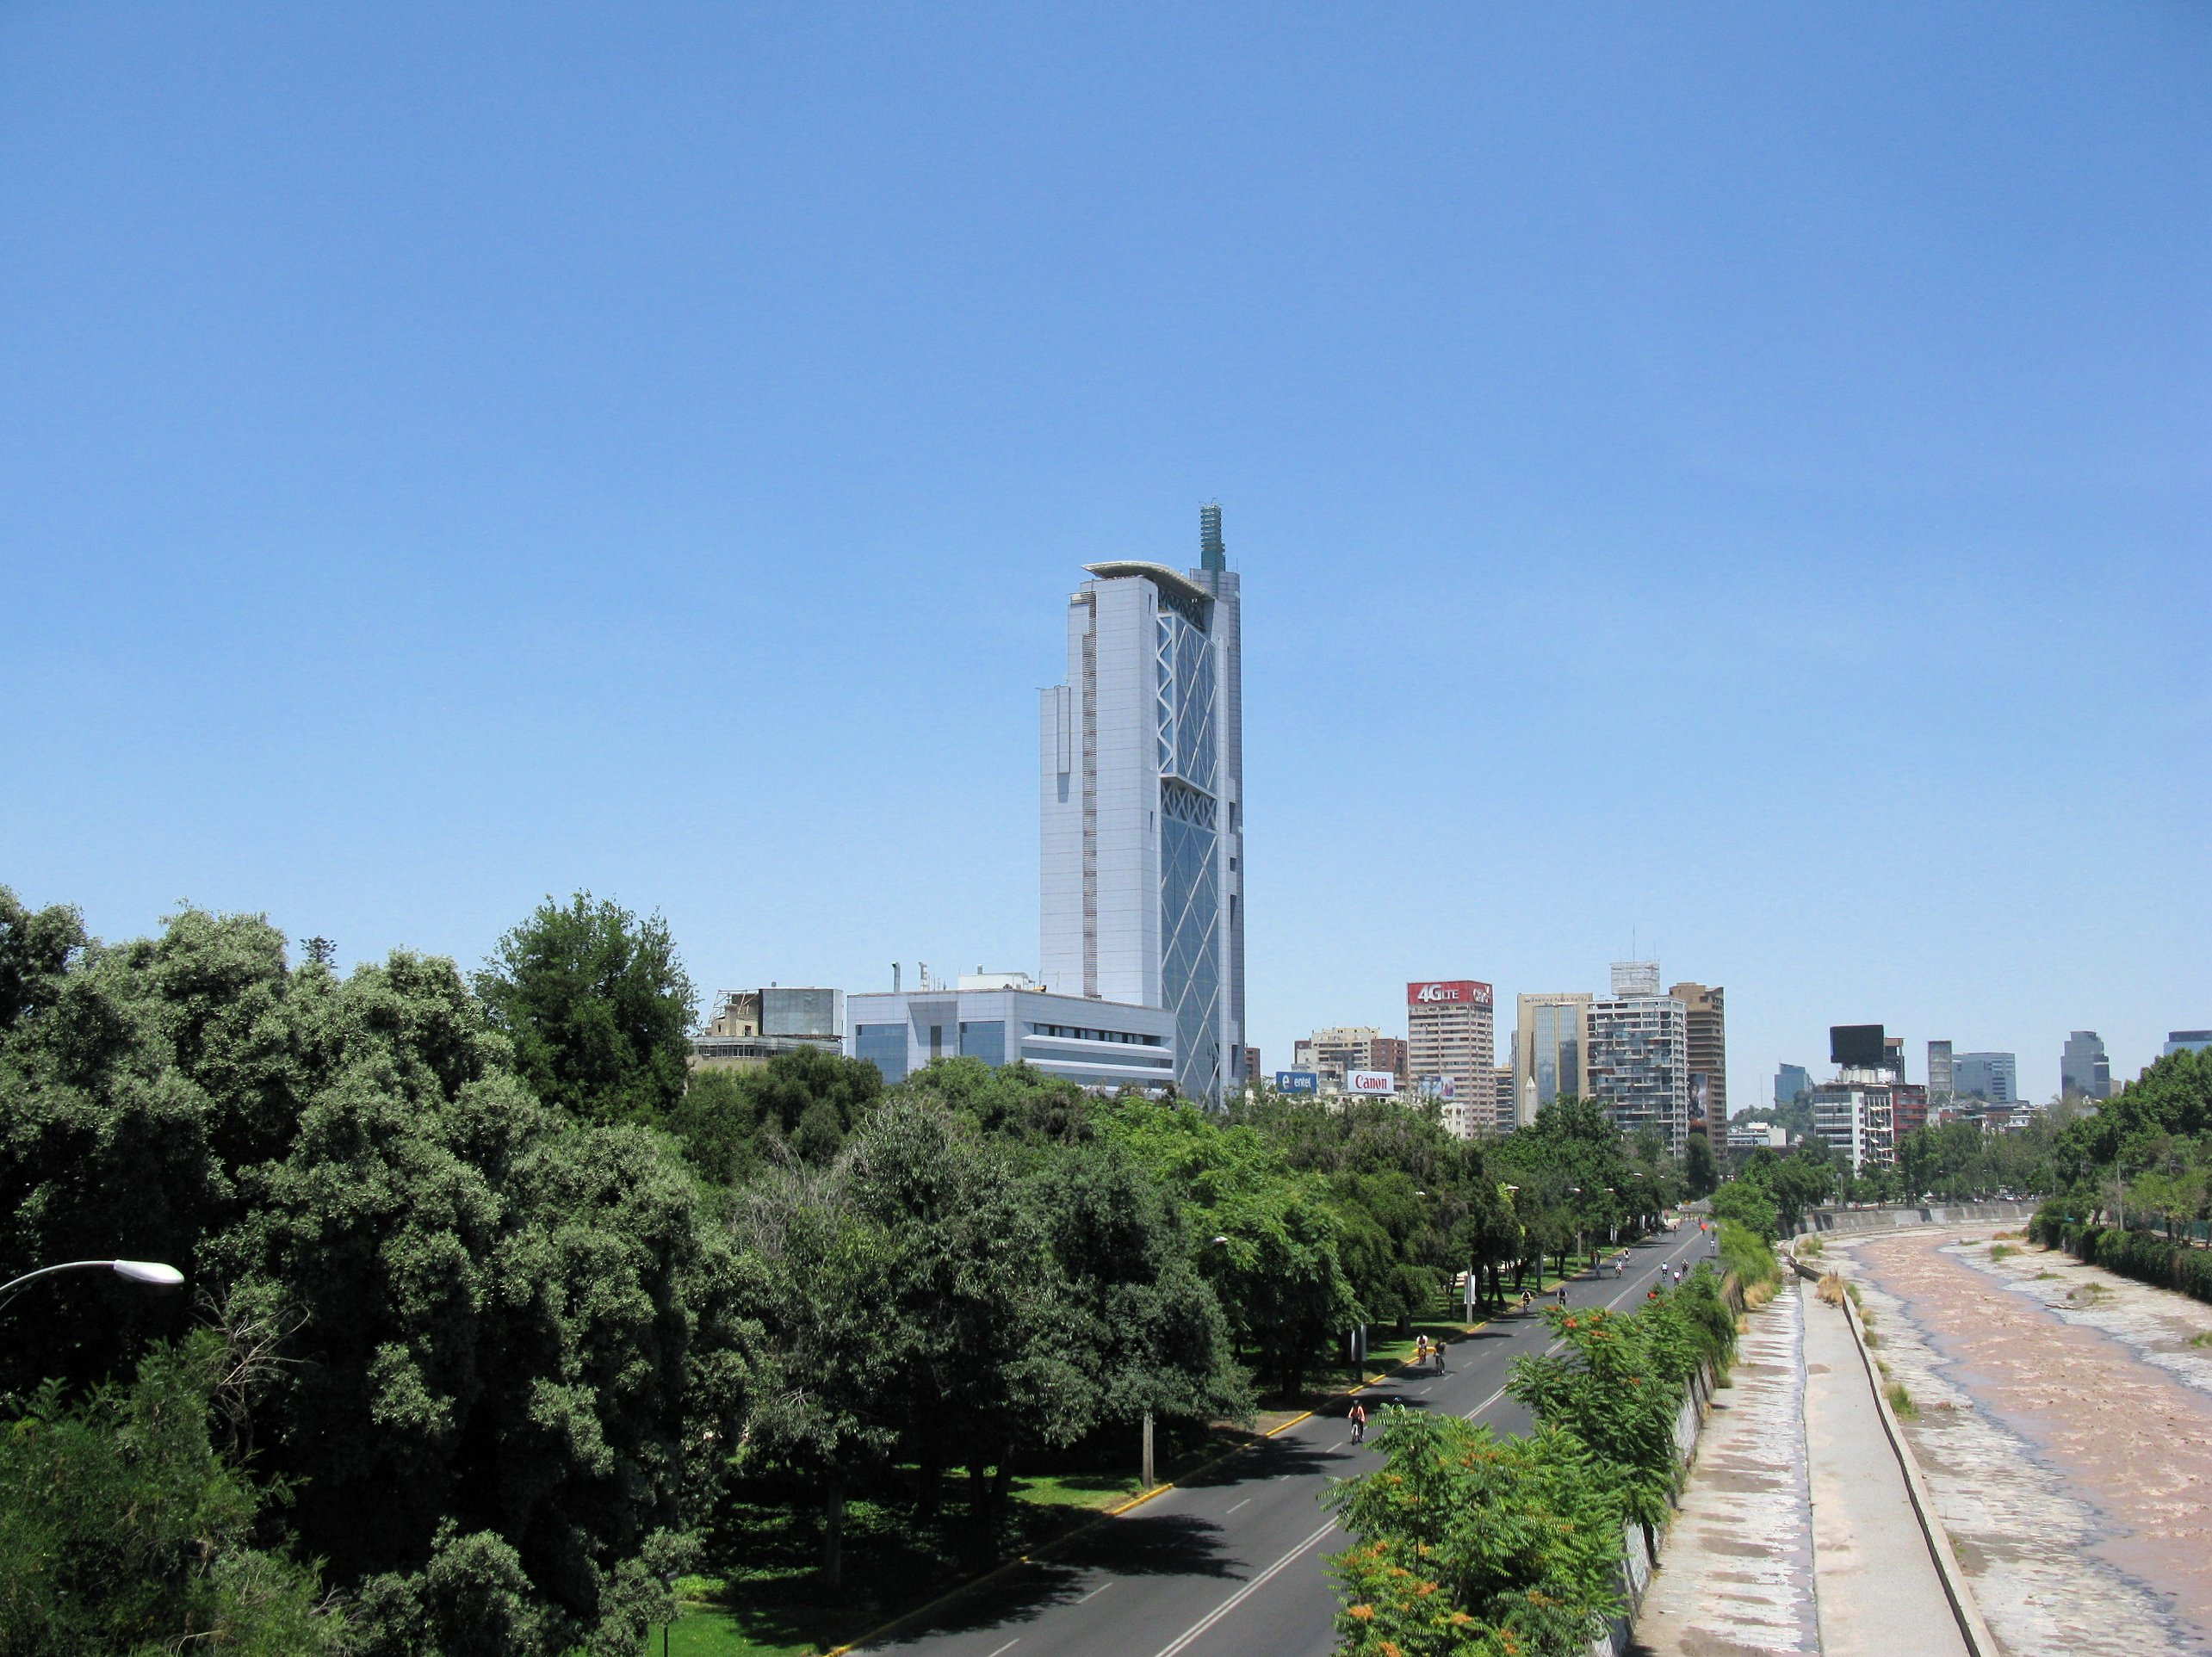 Looking west, Providencia's trees provide a lush  foreground for Santiago's Torre Telefonica and its downtown